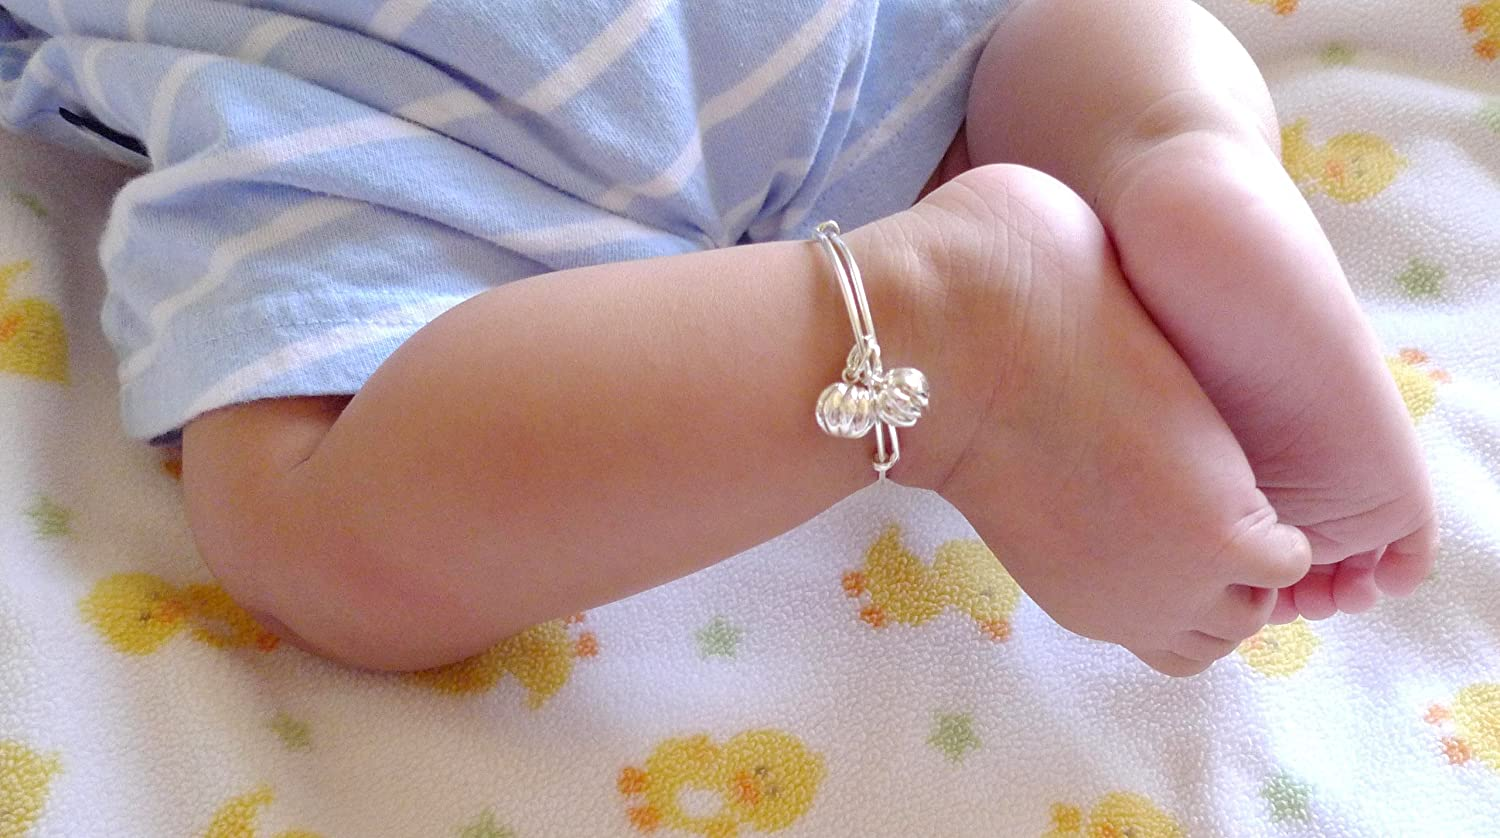 Amazon.com: New 925 Sterling Silver Baby/ Infant Anklet-Baby ...